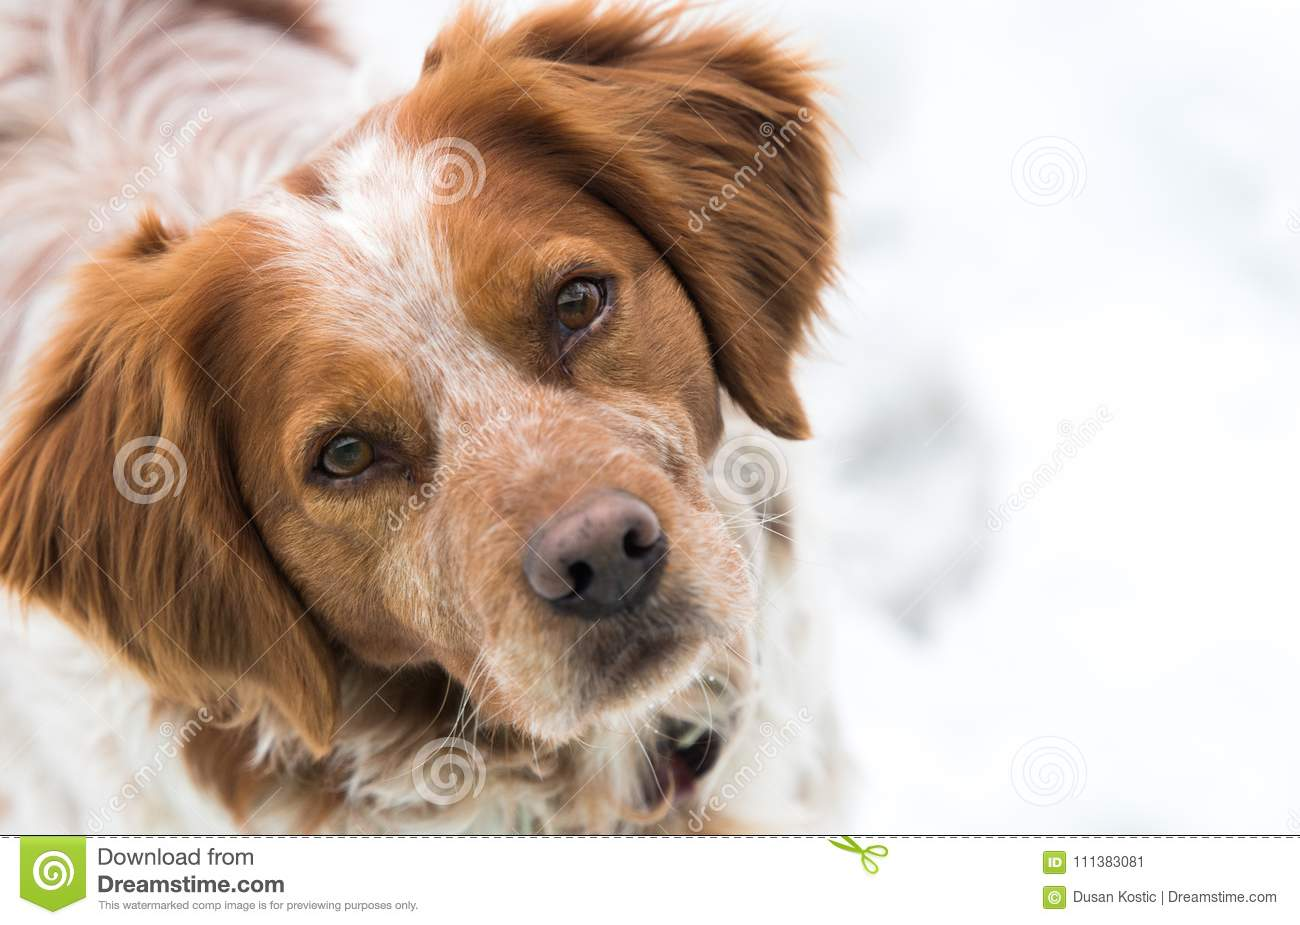 Orange And White French Brittany Spaniel Stock Image Image Of White Friend 111383081